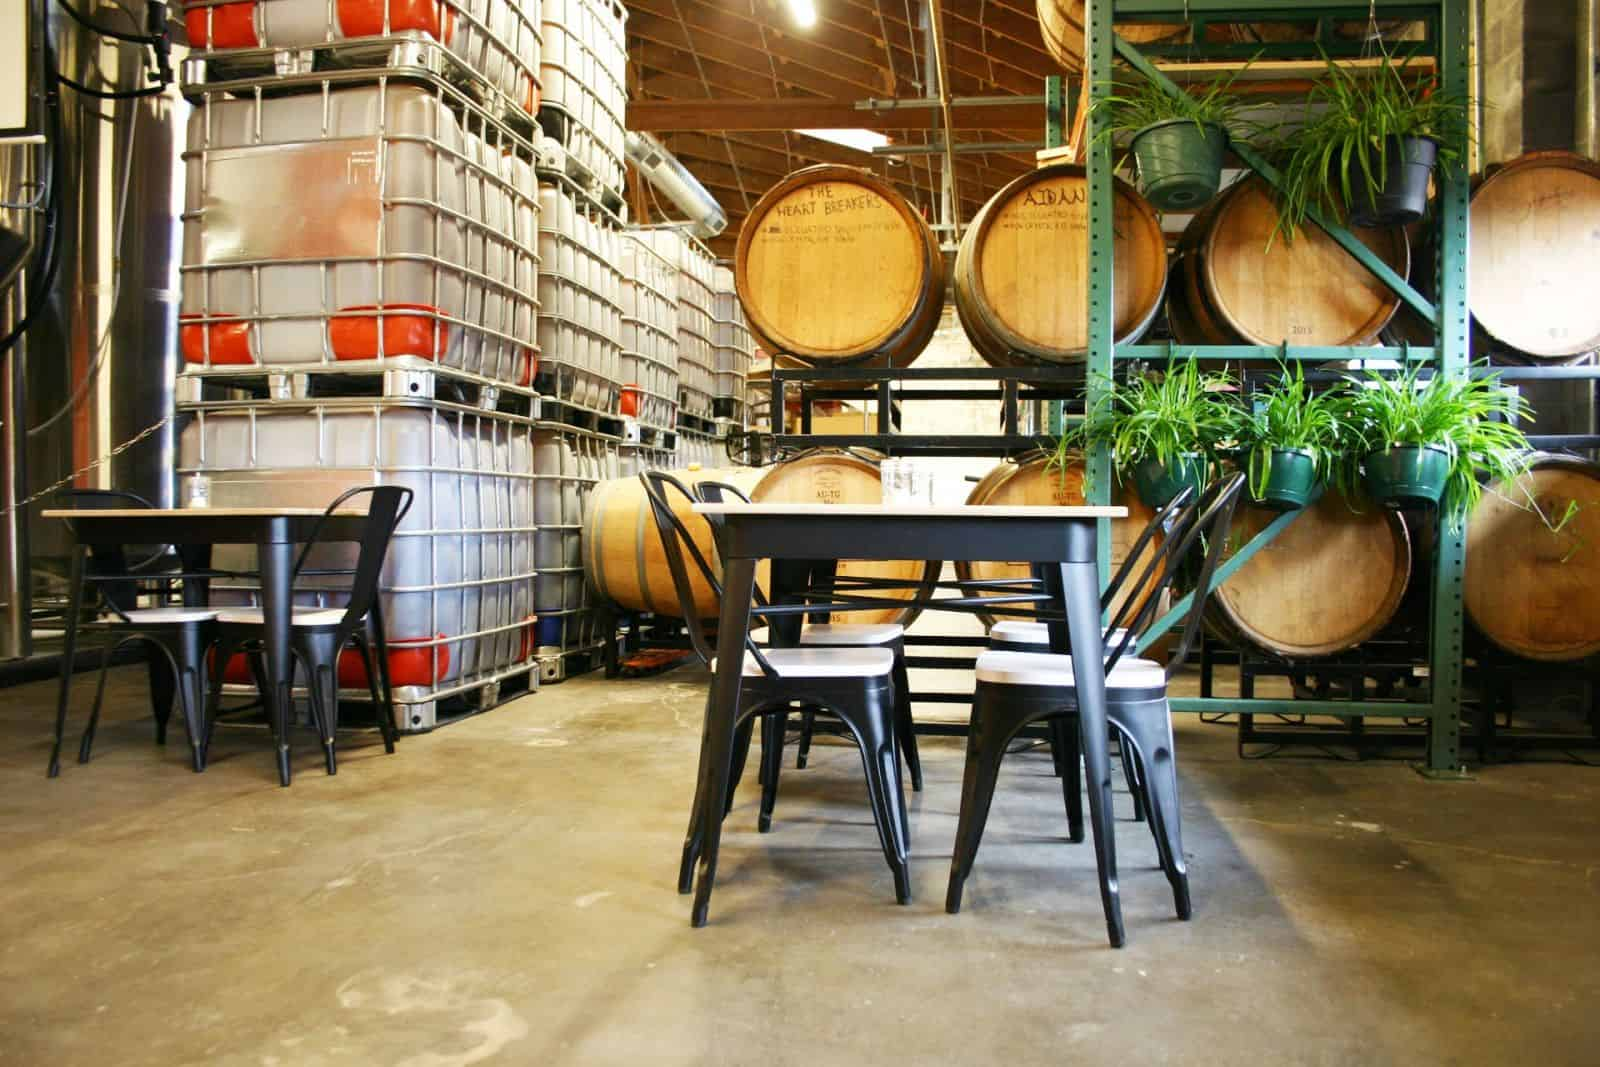 Swift Cider taproom